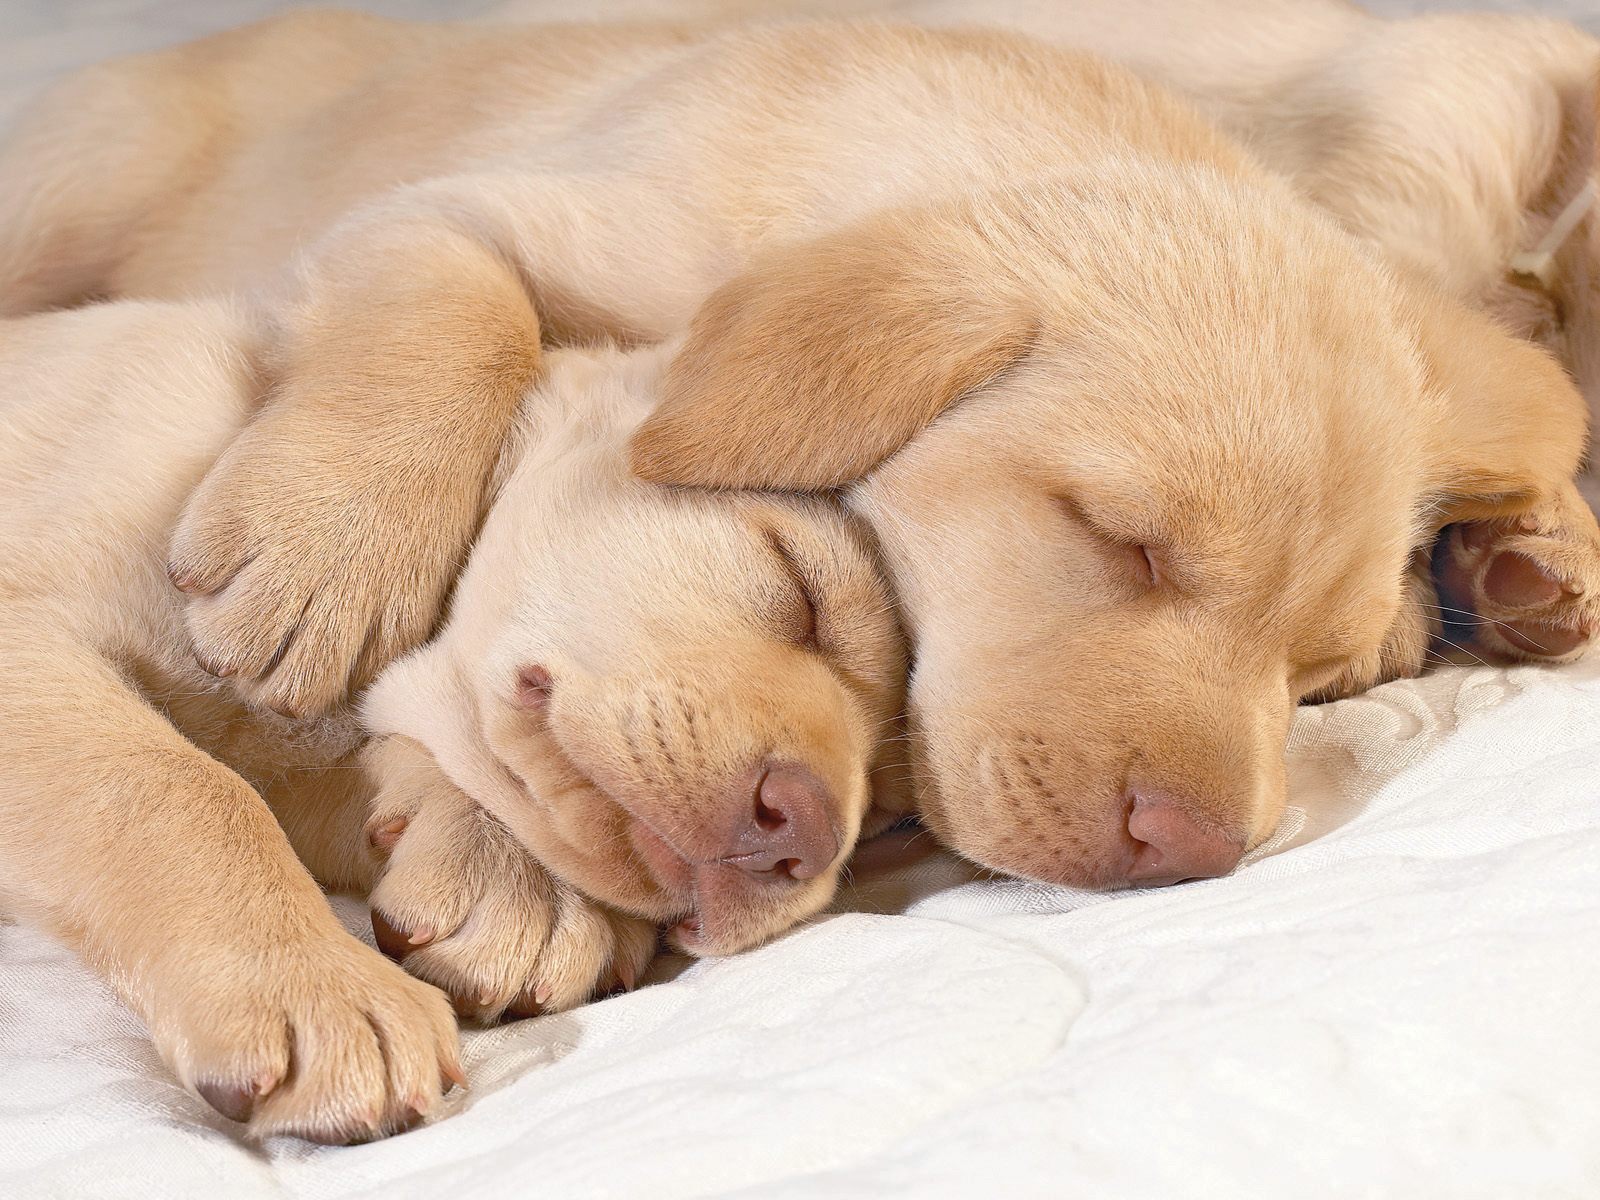 [Image: Cute-puppies-in-hug-puppies-14748941-1600-1200.jpg]